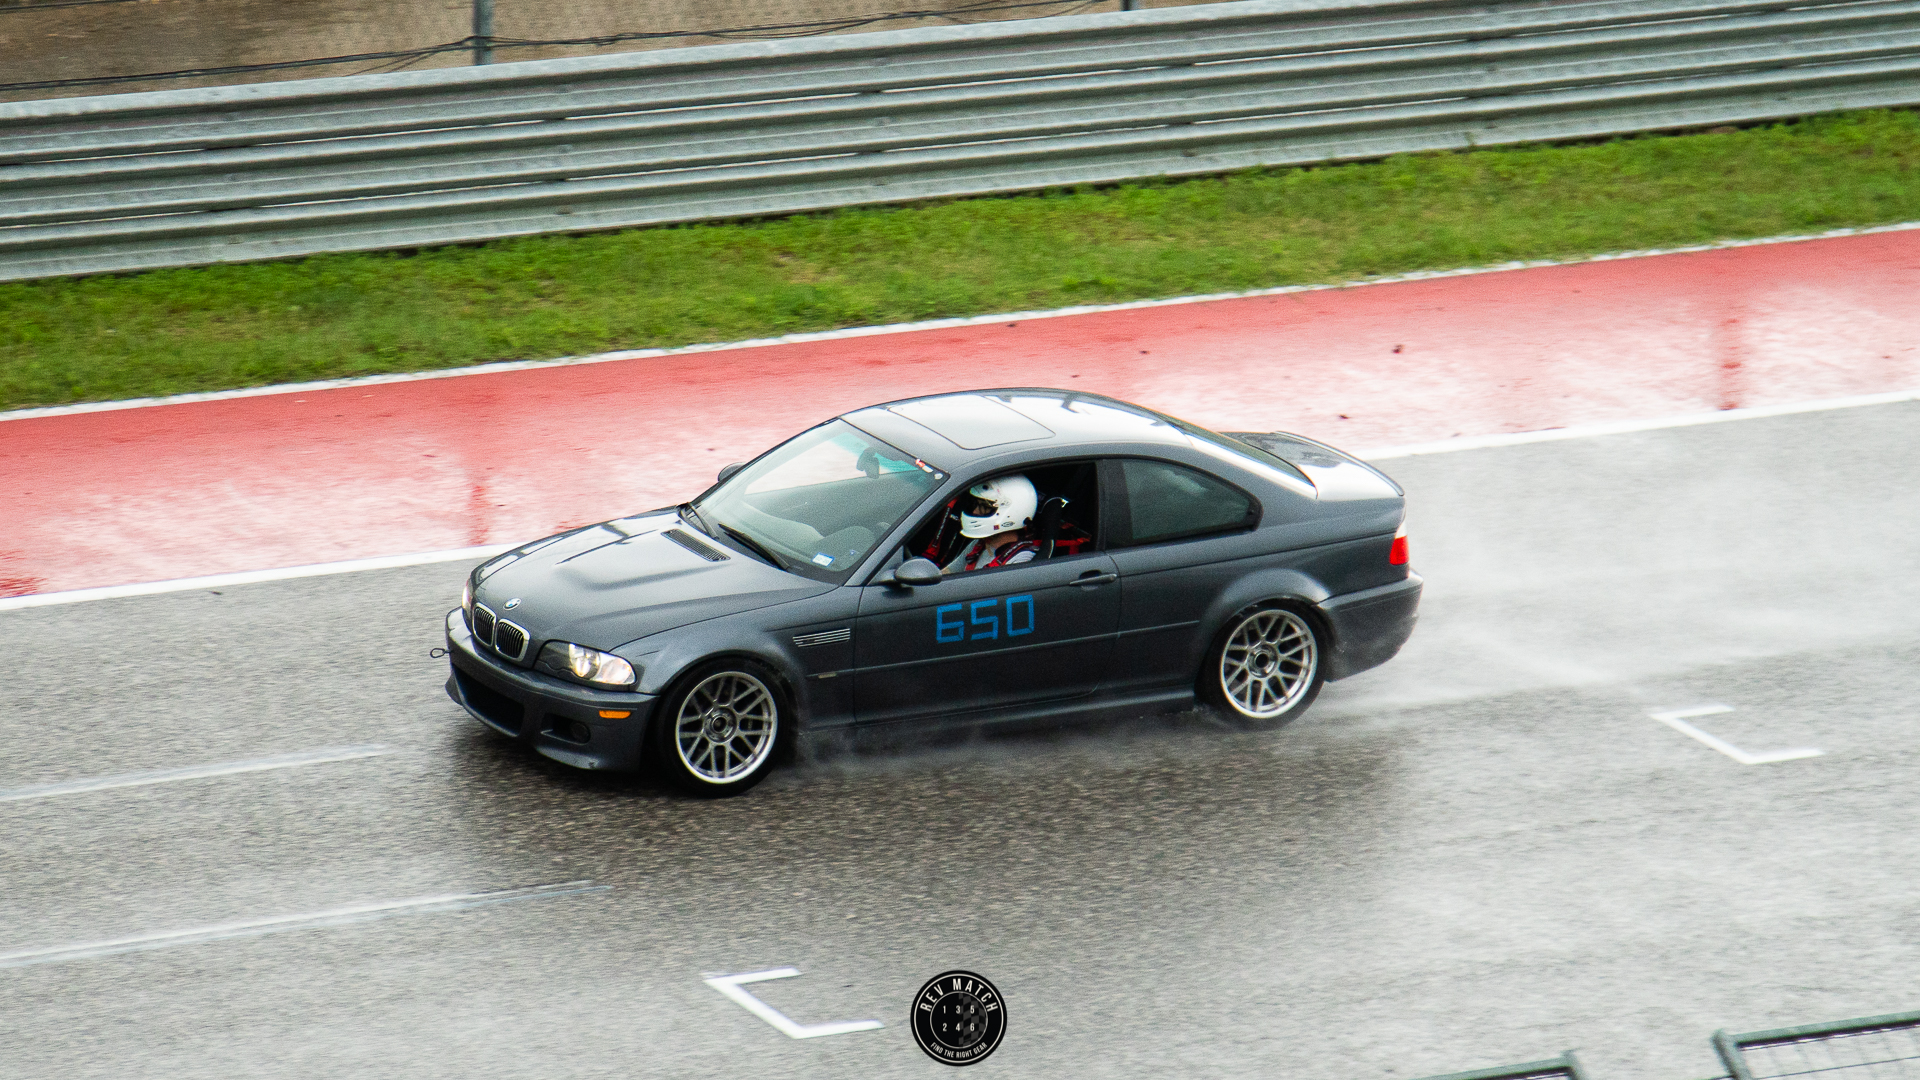 Edge Addict COTA May 2019 Rev Match Media-33.jpg